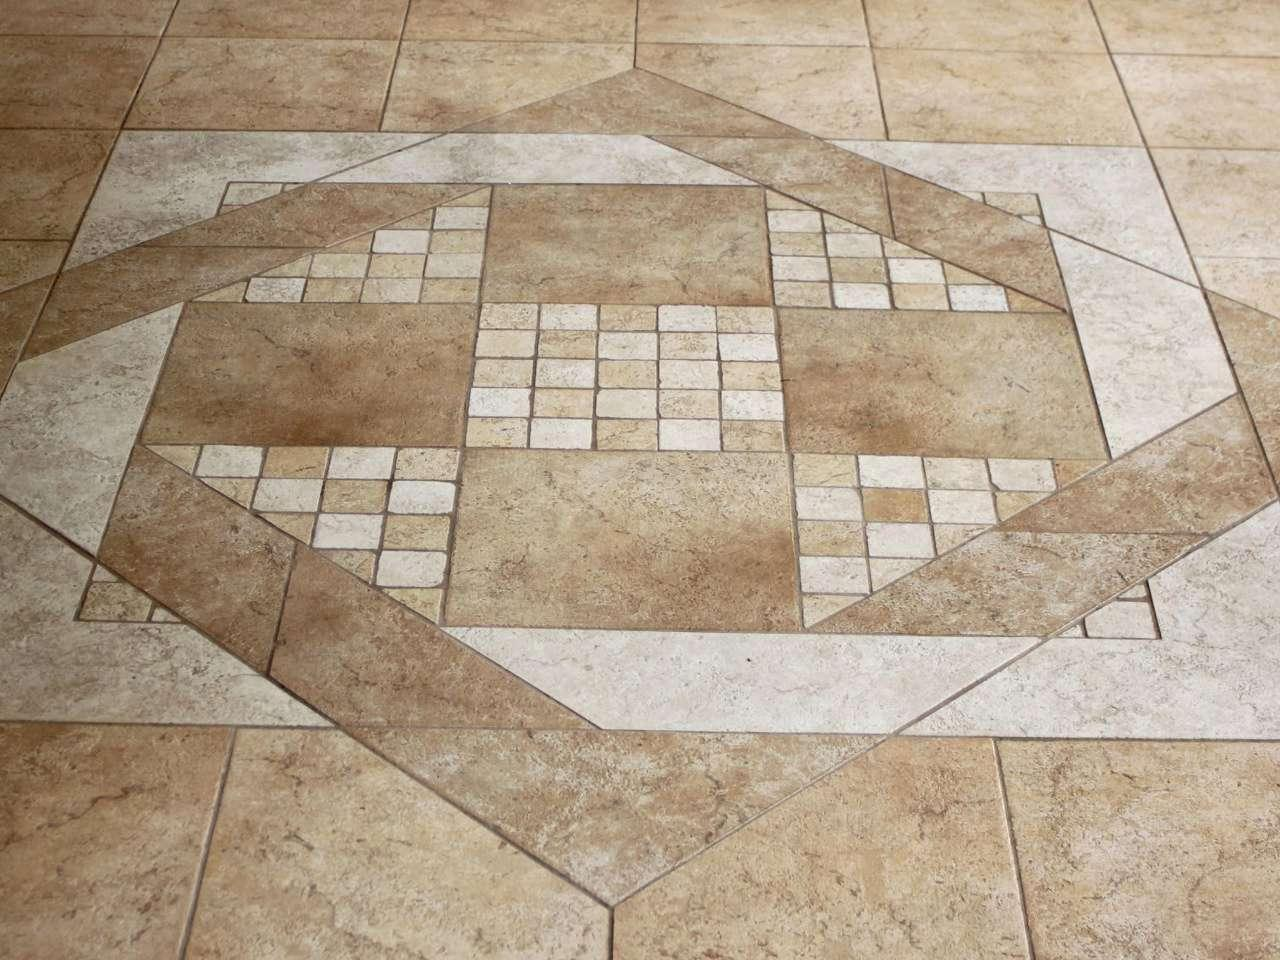 Vigas Tile Installation Birmingham Royal Oak West Bloomfield Michigan - Ceramic tile stores michigan